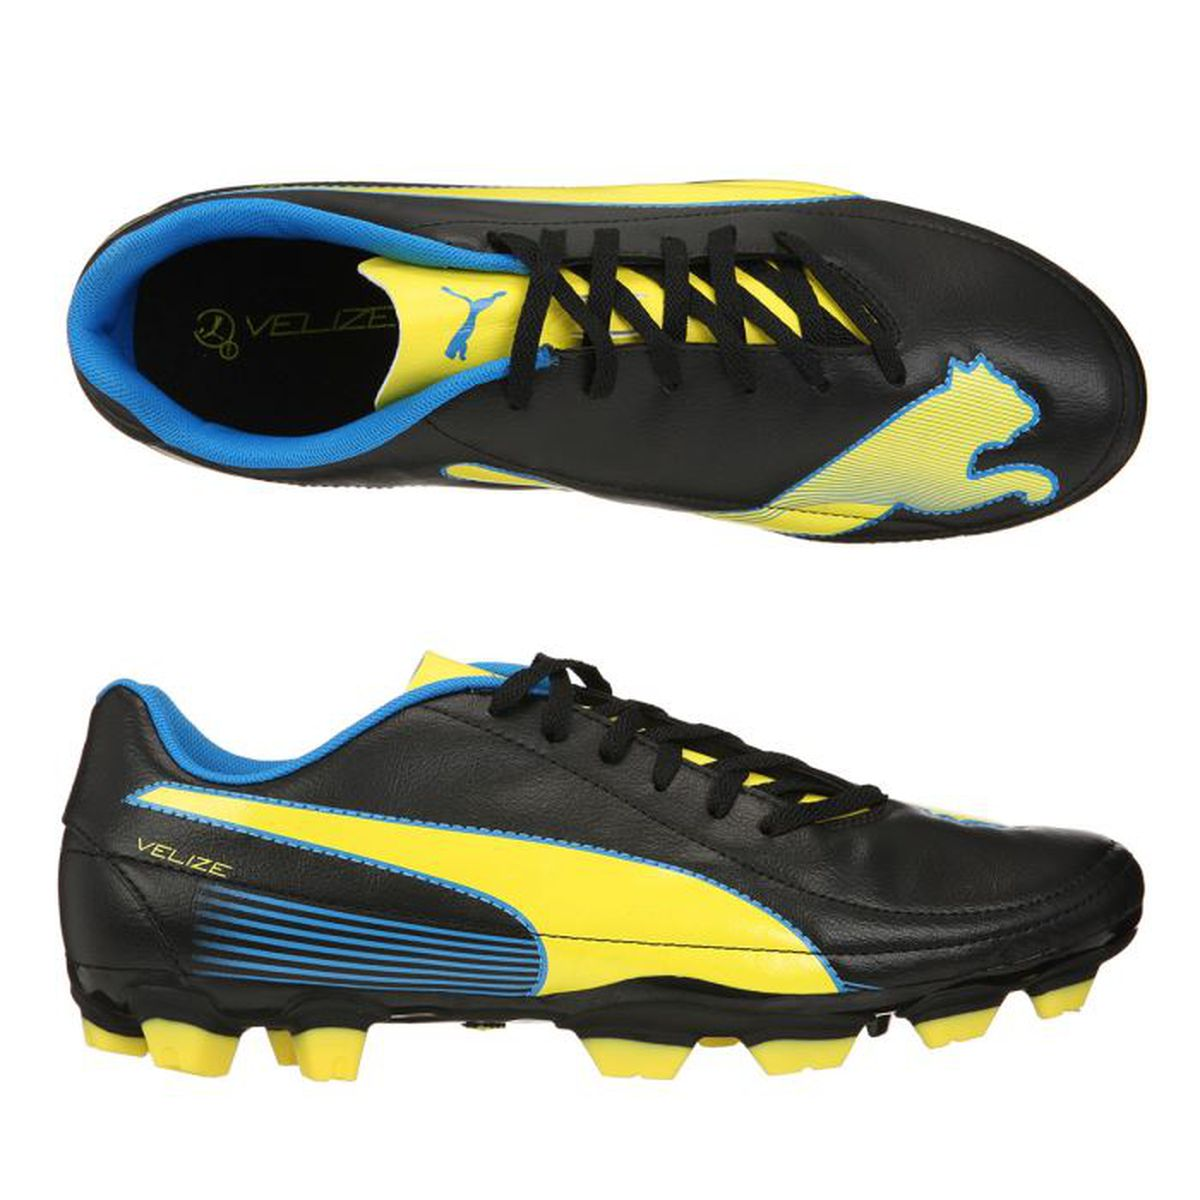 puma homme chaussures football